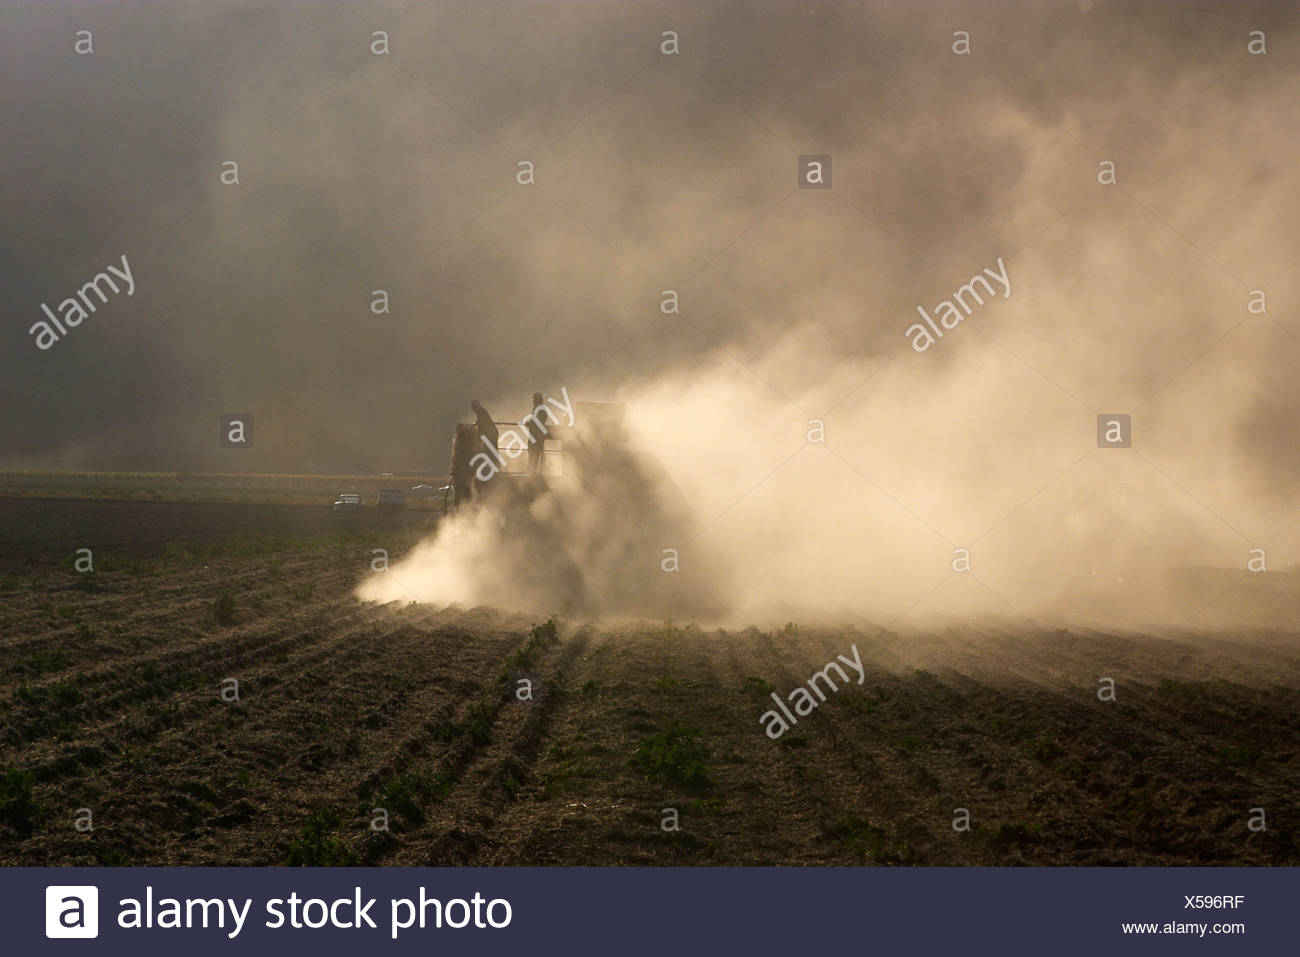 Harvesting dry beans; a dry bean thresher is pulled by a tractor as it harvests windrowed dry beans / Salinas Valley, California - Stock Image